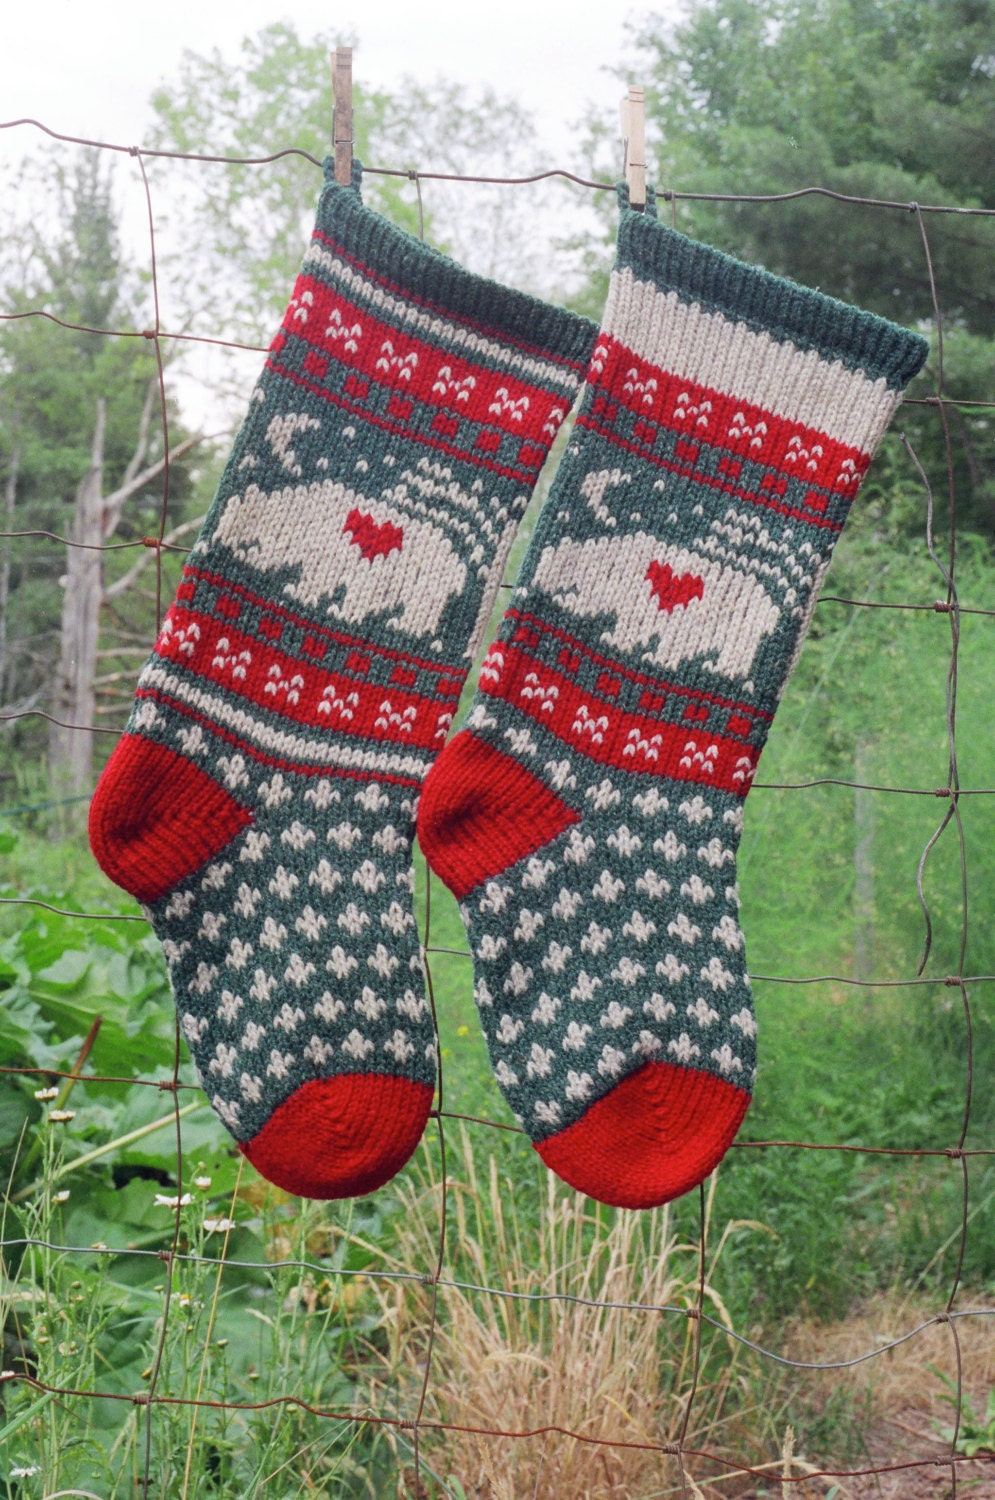 Christmas Stocking Knitting Pattern Circular Needles : Digital Christmas Stocking Knitting Pattern BEAR Stocking